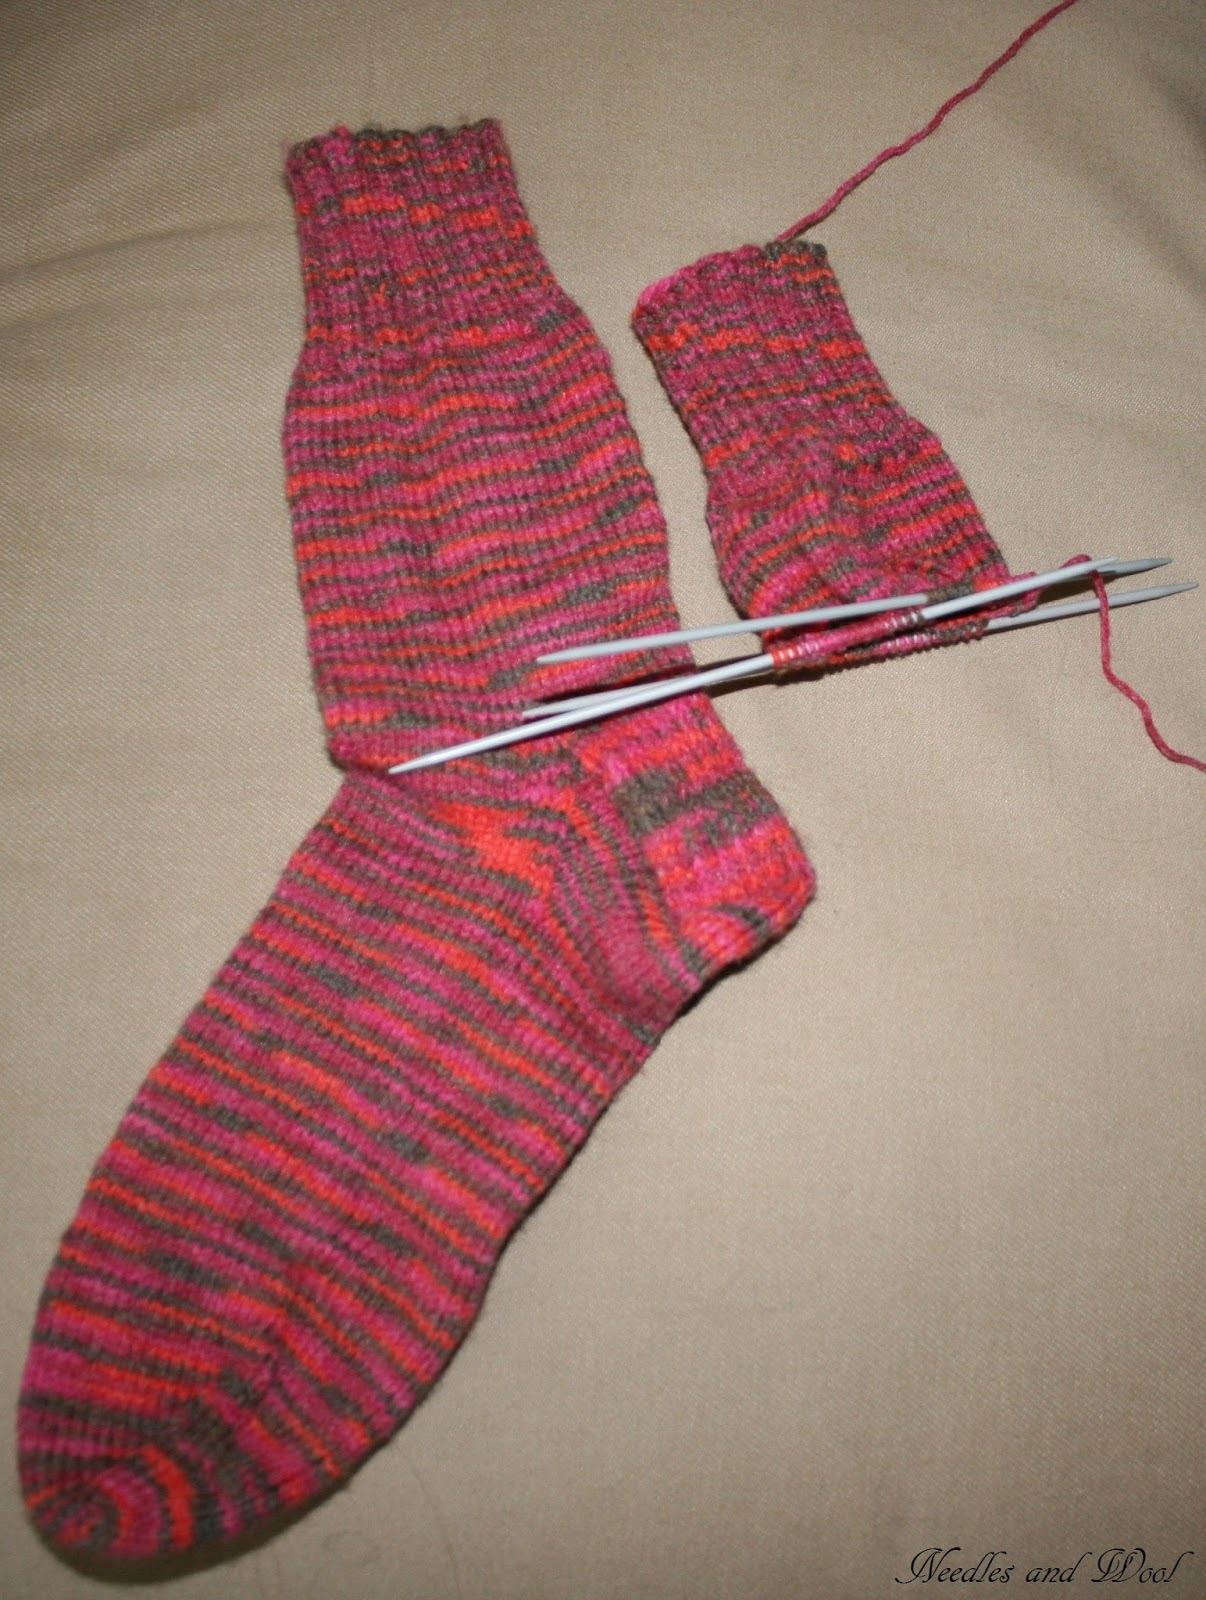 Needles and Wool: Knitting Socks, Front sweater Piece, and ...